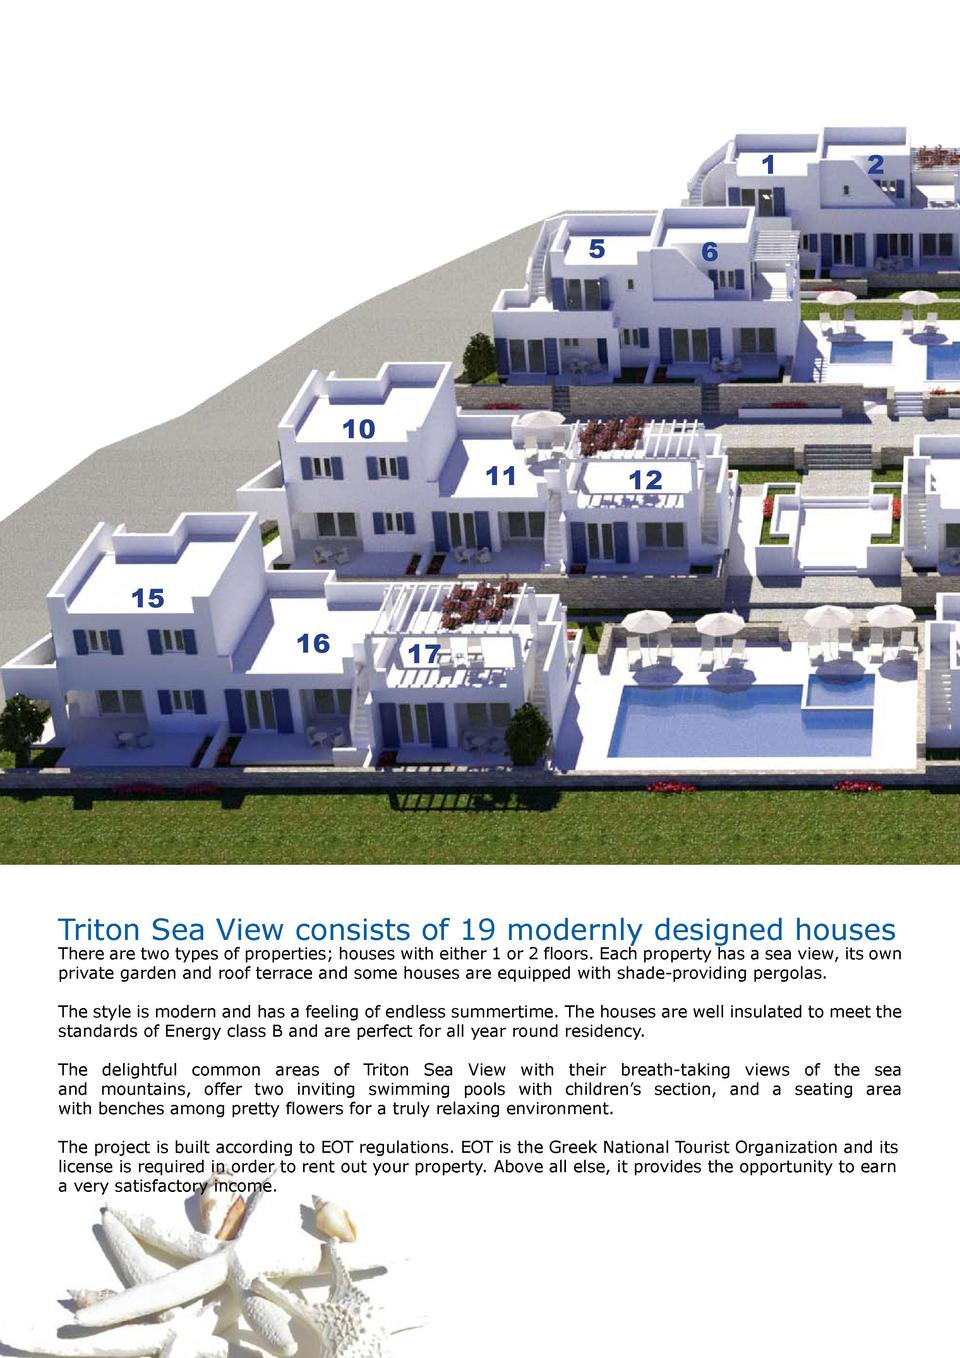 1 5  2  6  10 11  12  15 16  17  Triton Sea View consists of 19 modernly designed houses  There are two types of propertie...